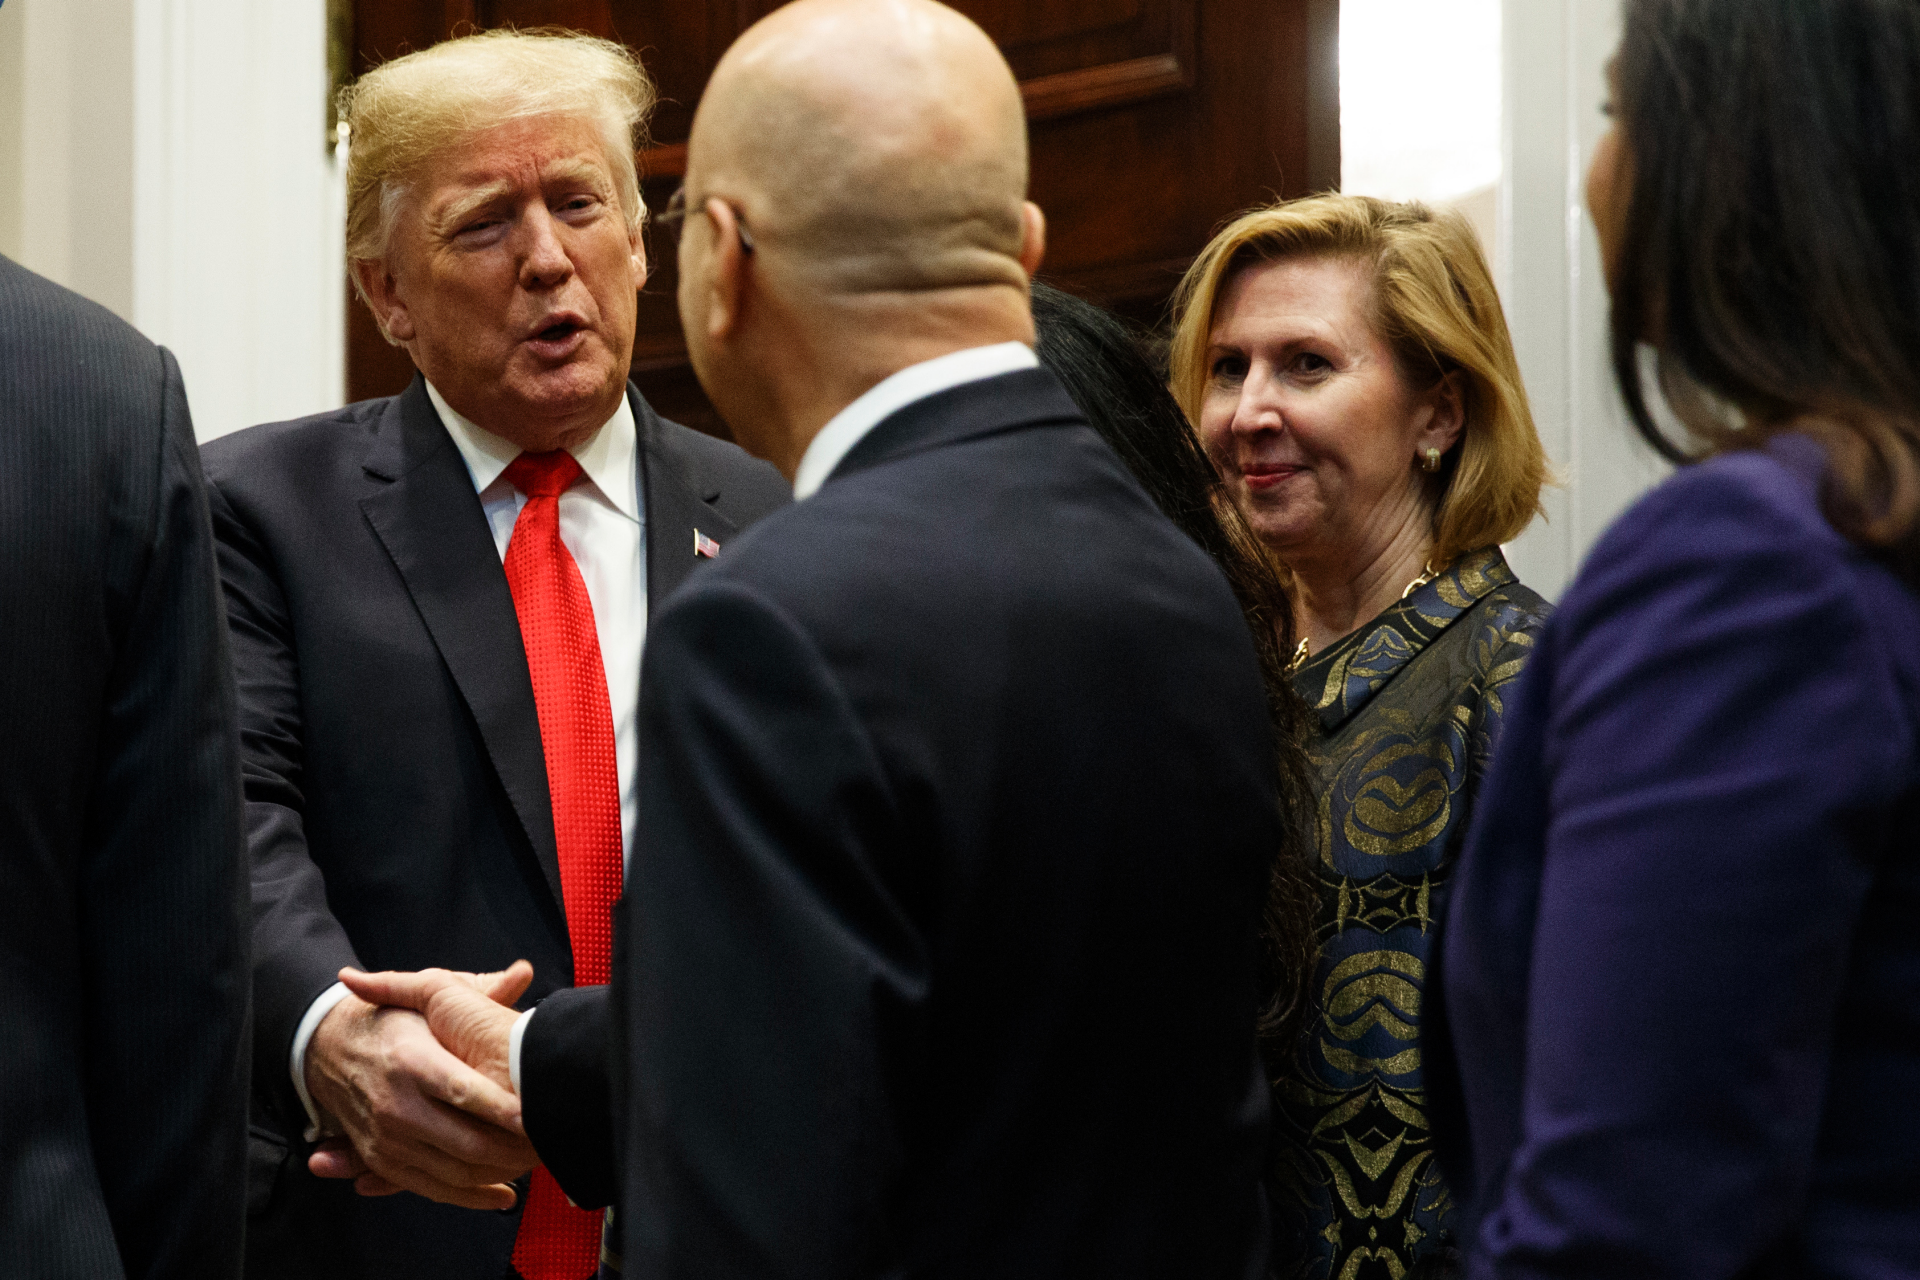 Mira Ricardel, the Bolton deputy ousted after spat with Melania Trump, up for top Pentagon job